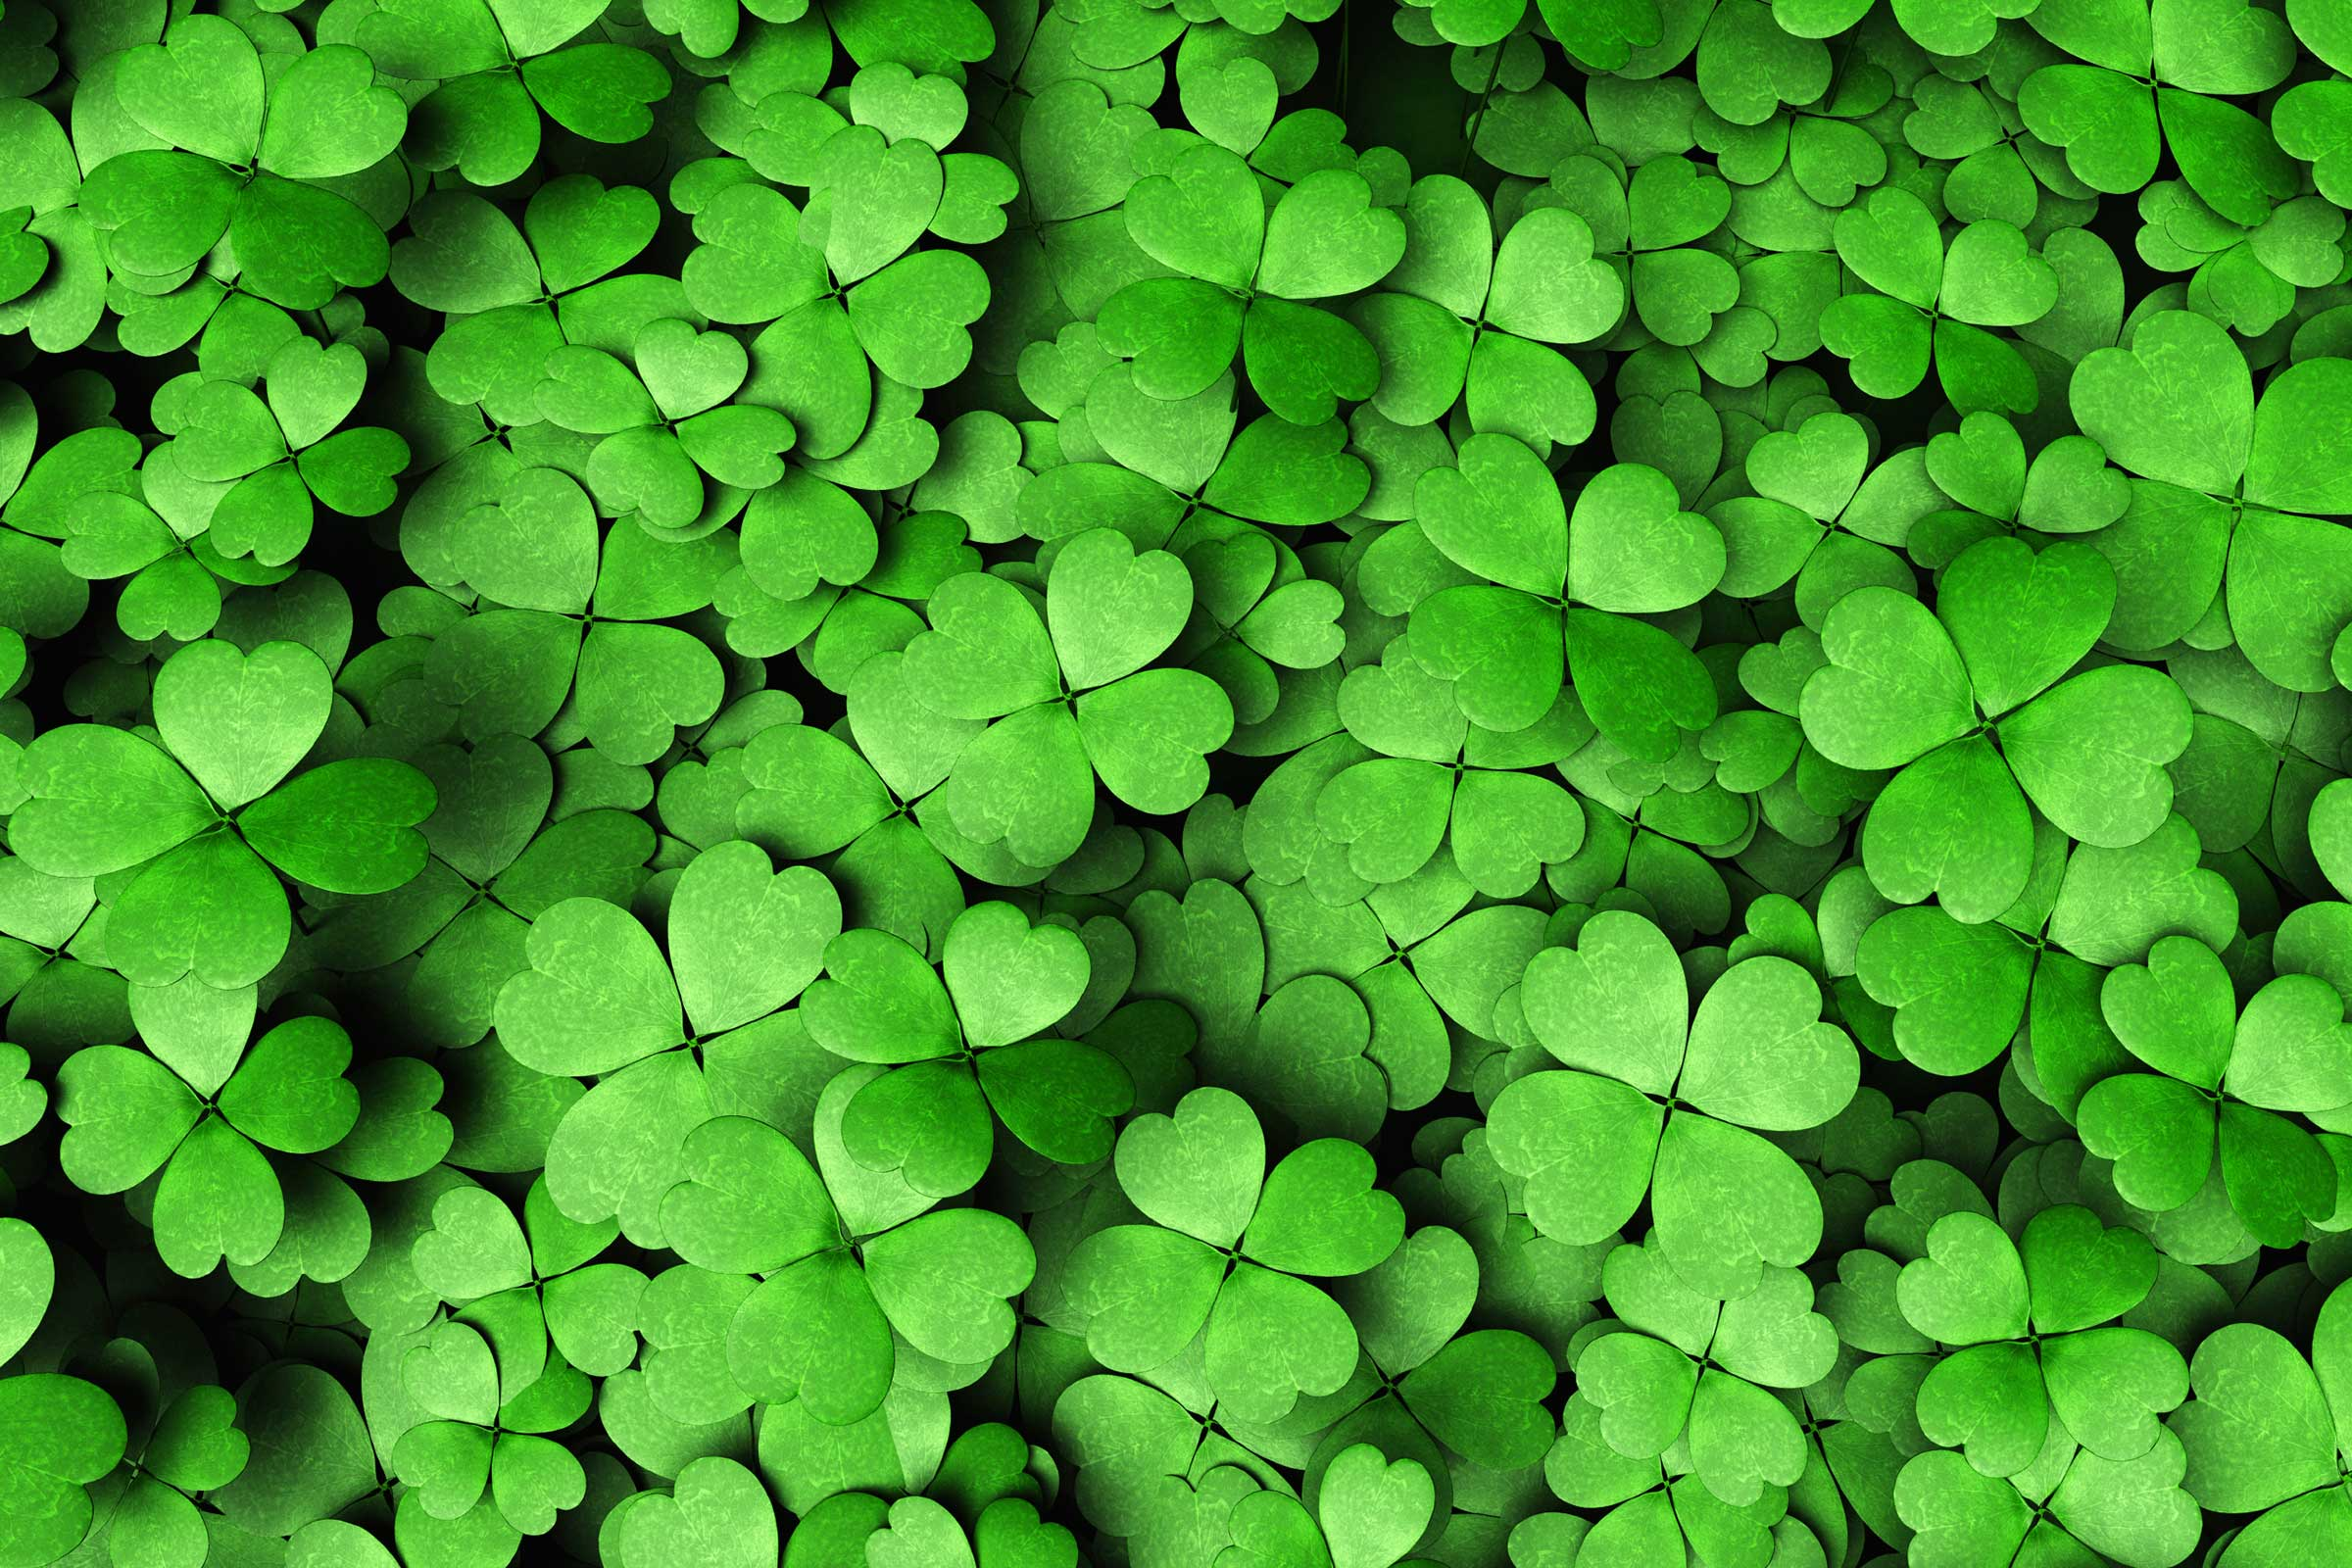 False fact: Green is the color of St. Patricku0026#39;s Day